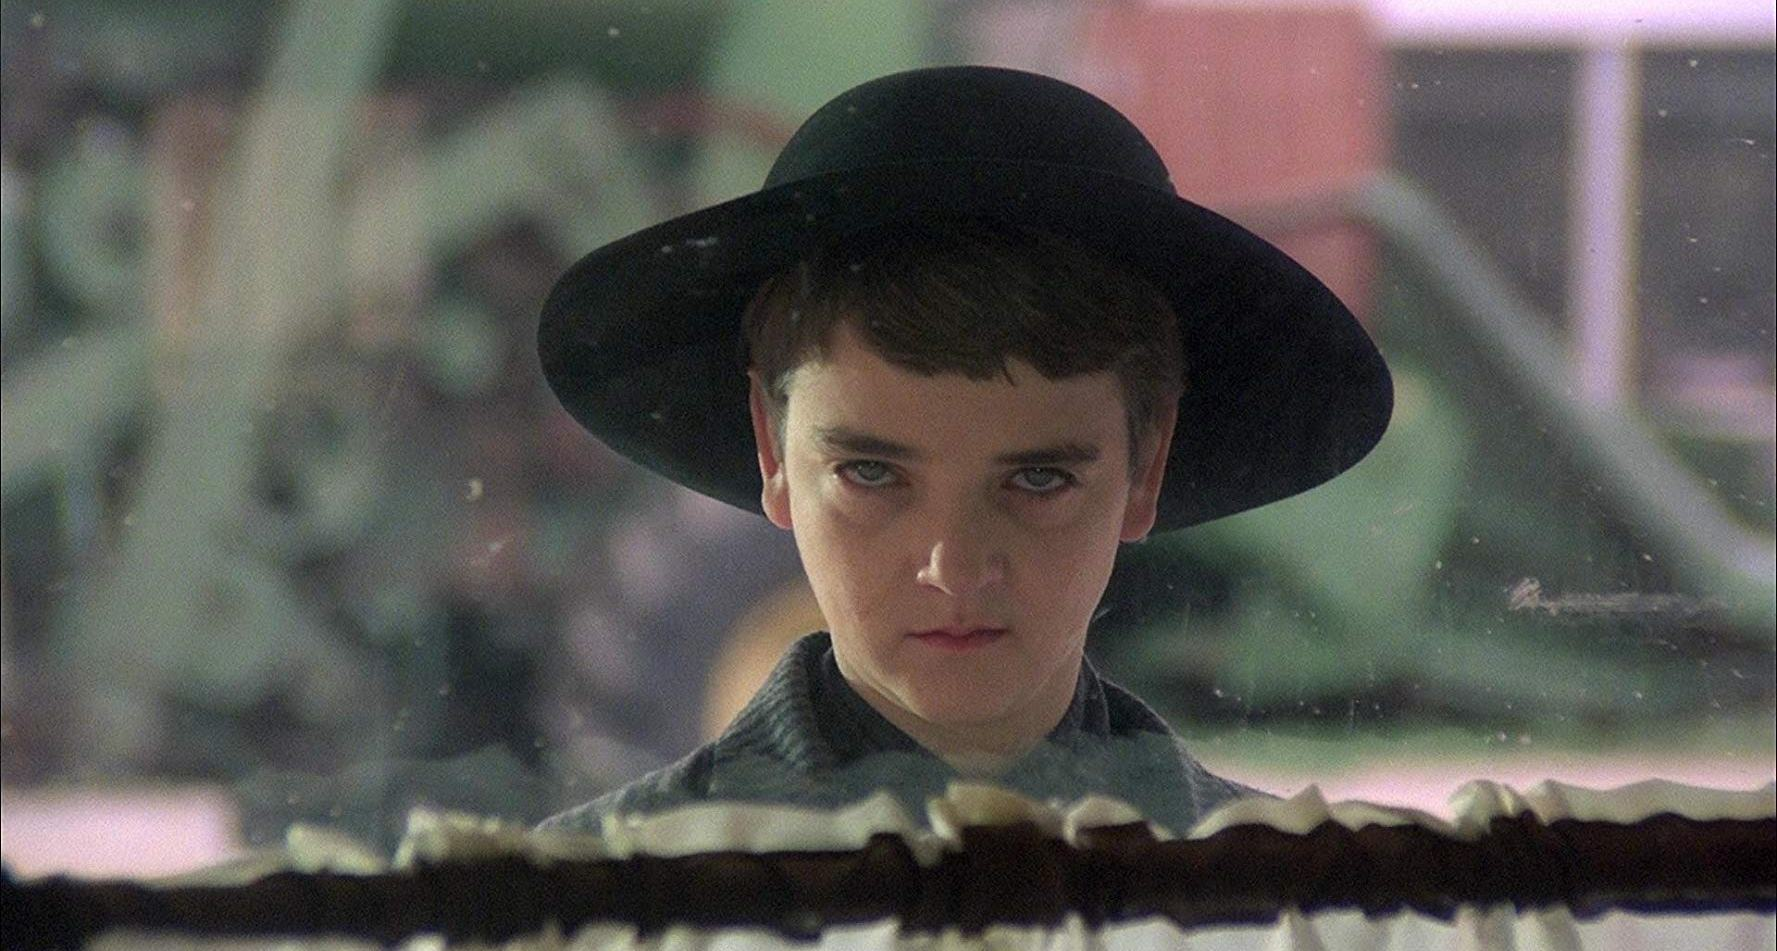 John Franklin as Isaac in Children of the Corn (1984)